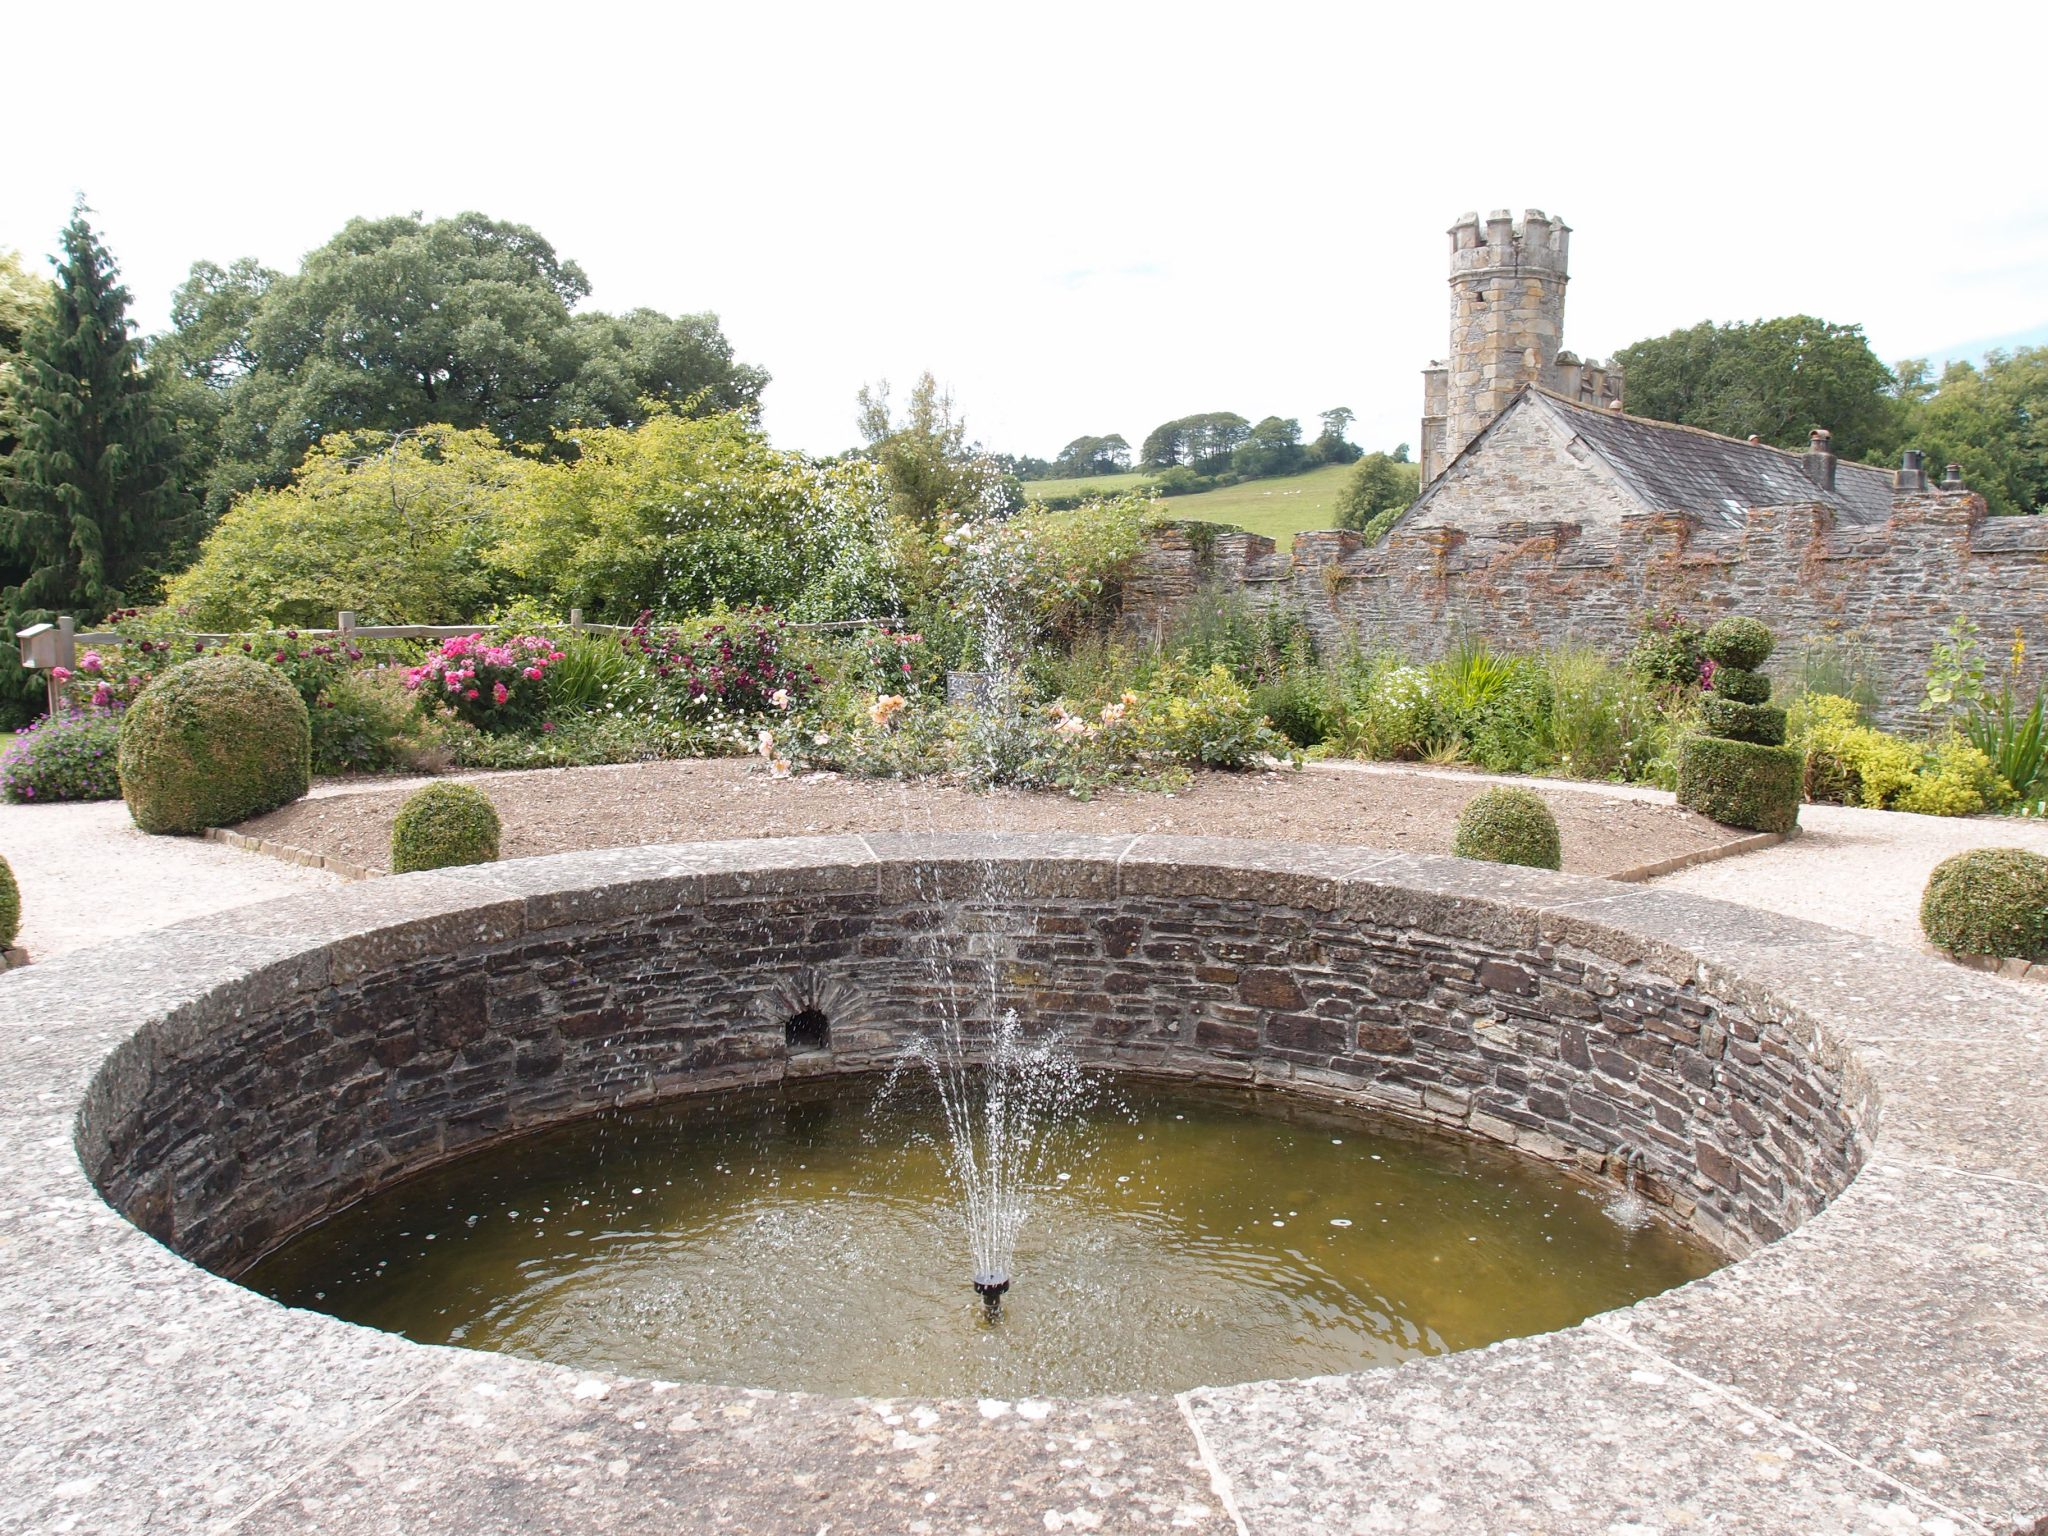 Central Pool in the Elizabethan Garden, with the Abbot's Tower in the background.